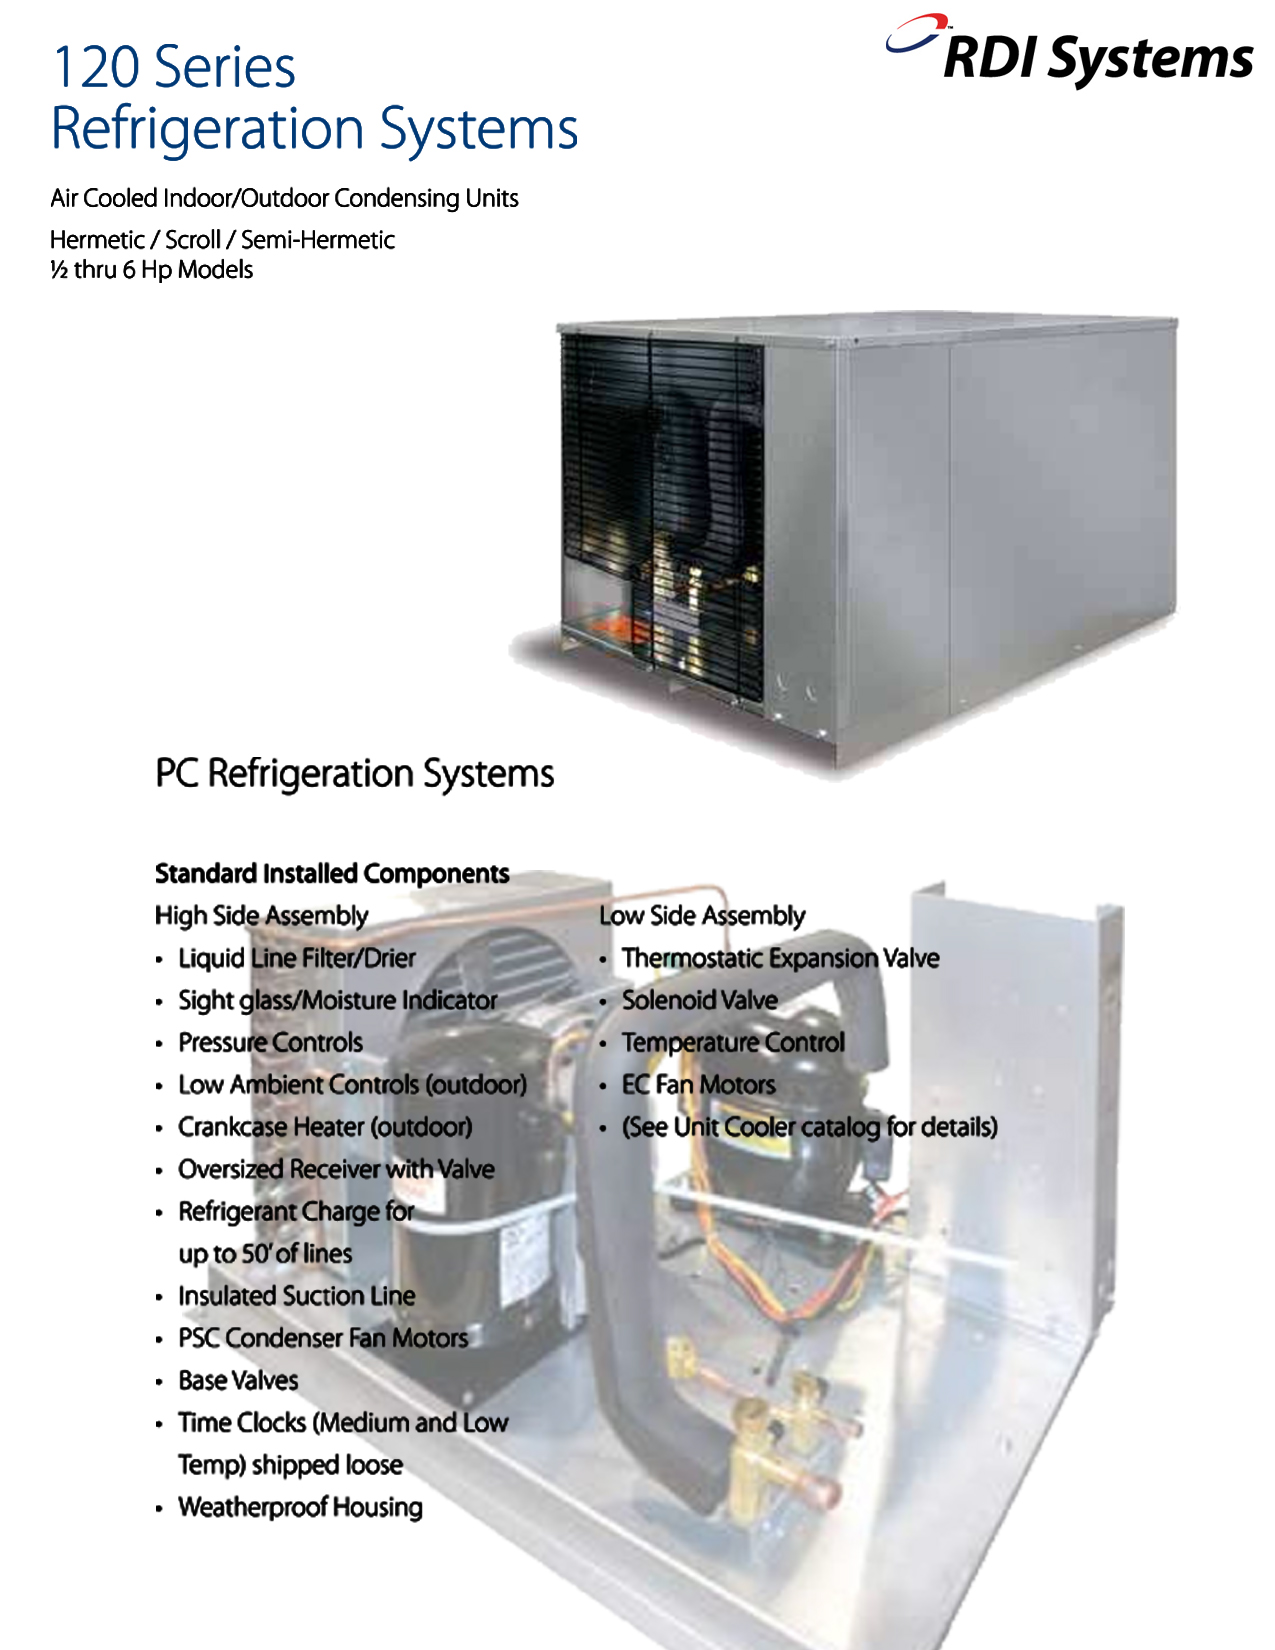 rdi refrigeration unit wiring diagrams rdi systems 120 series refrigeration system air cooled 3 4hp 208  refrigeration system air cooled